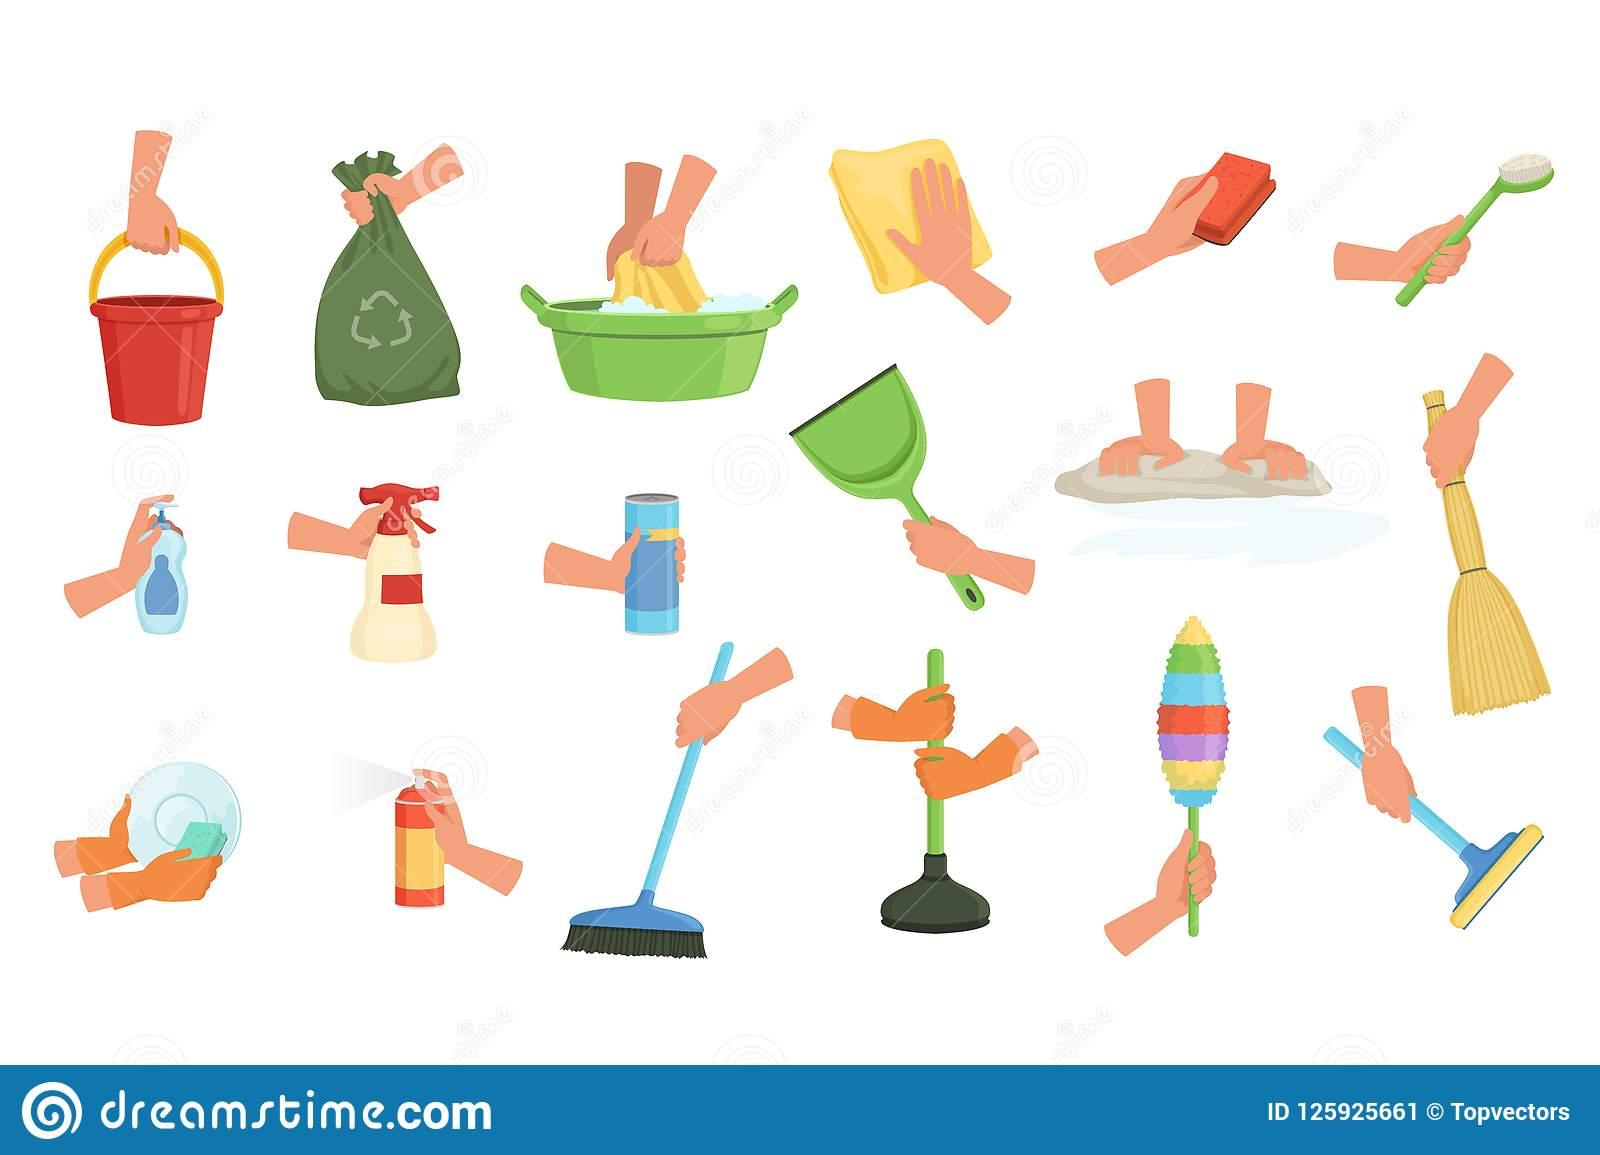 Colorful set of human hands using rag, dust brush, mop, broom, scoop and plunger. Equipment for cleaning house or car